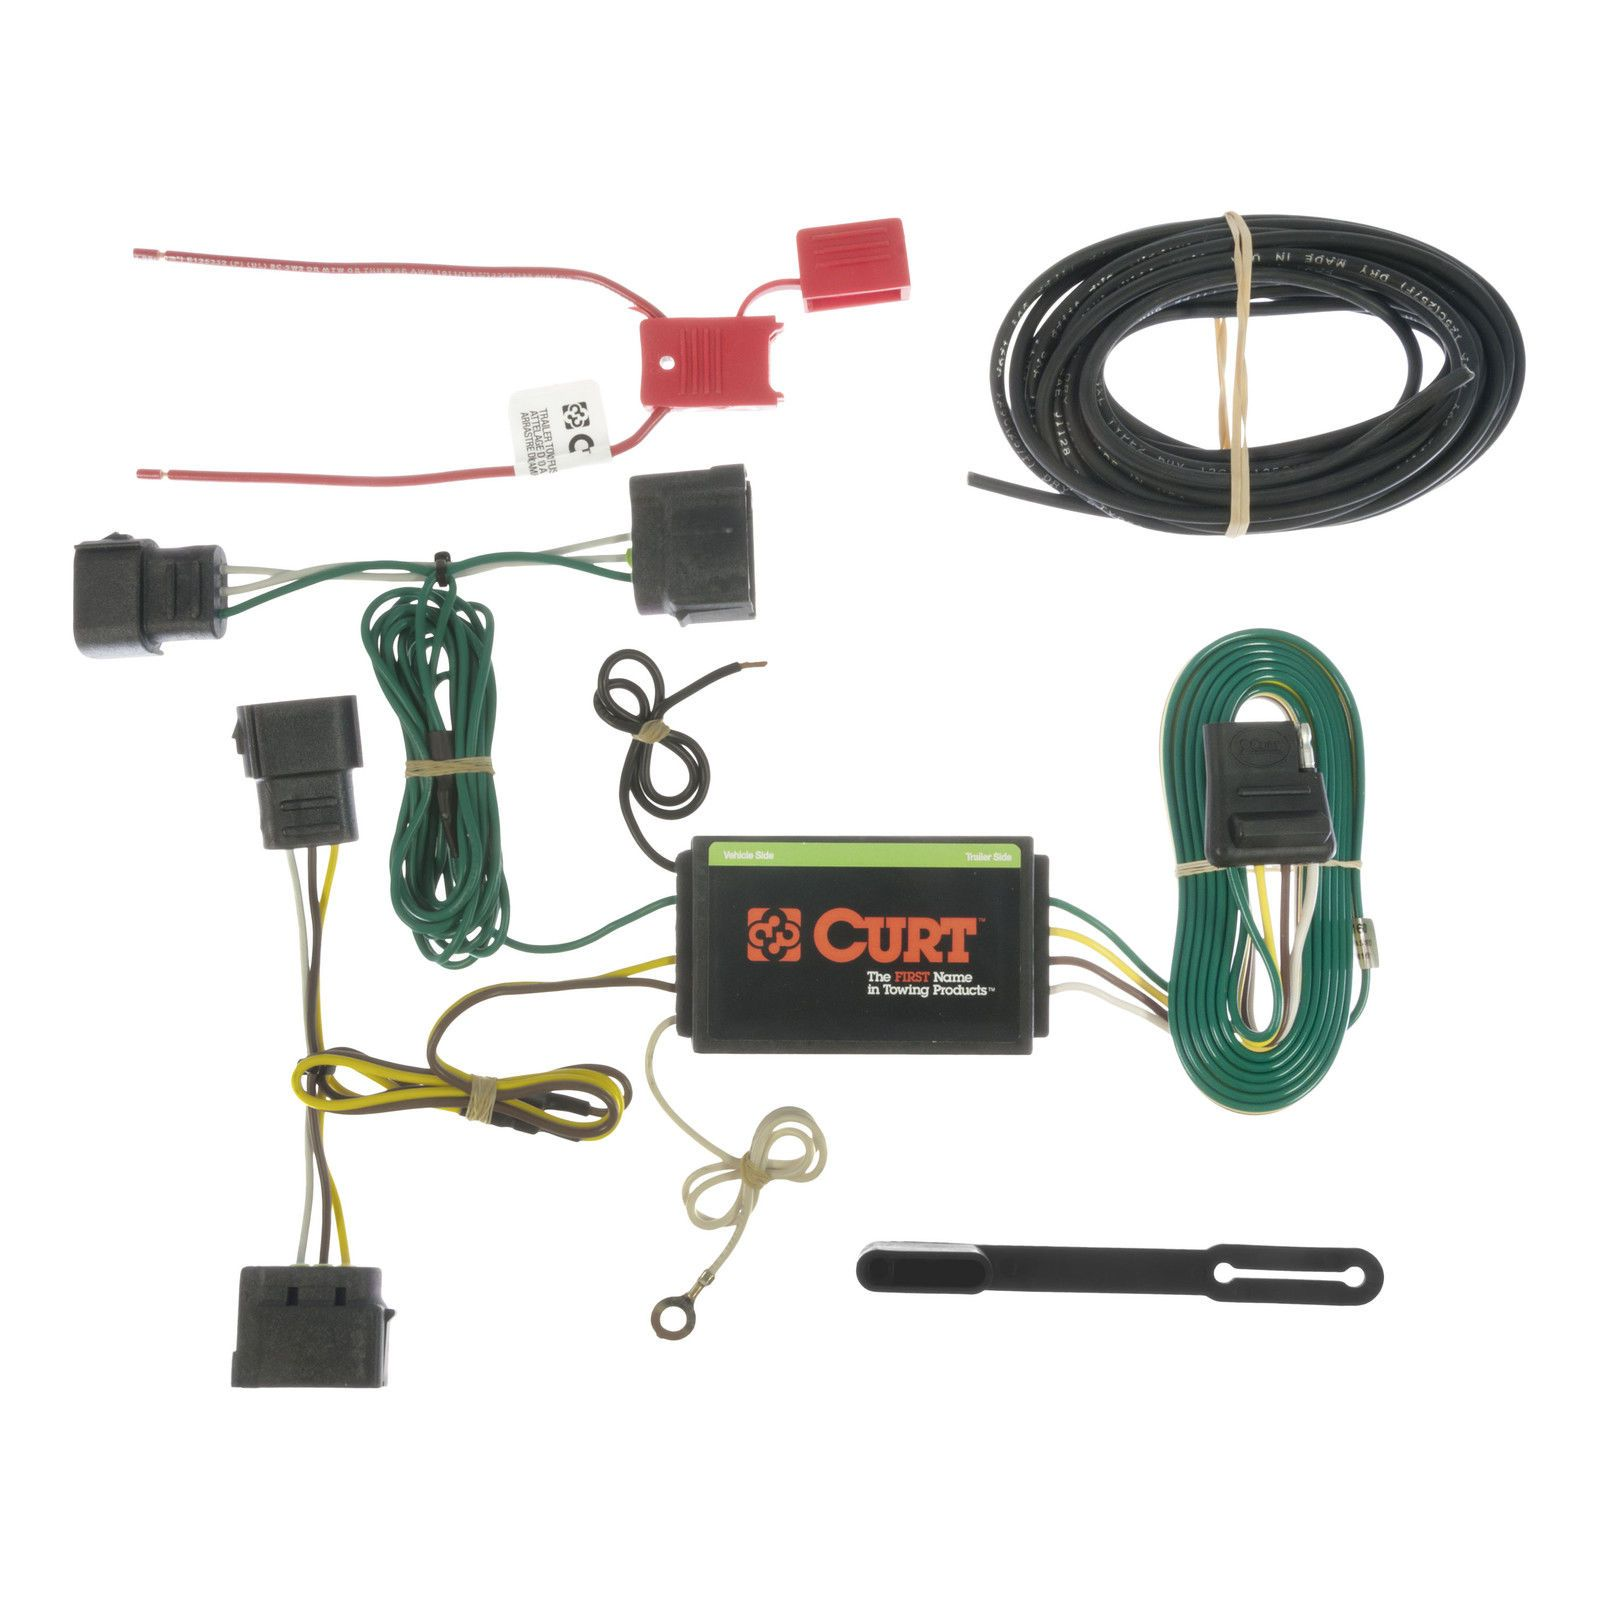 2010 Ford Edge Wiring Harness Diagrams Custom Automotive Kits Curt Vehicle To Trailer 56160 For 2007 Rh Pinterest Ca Truck